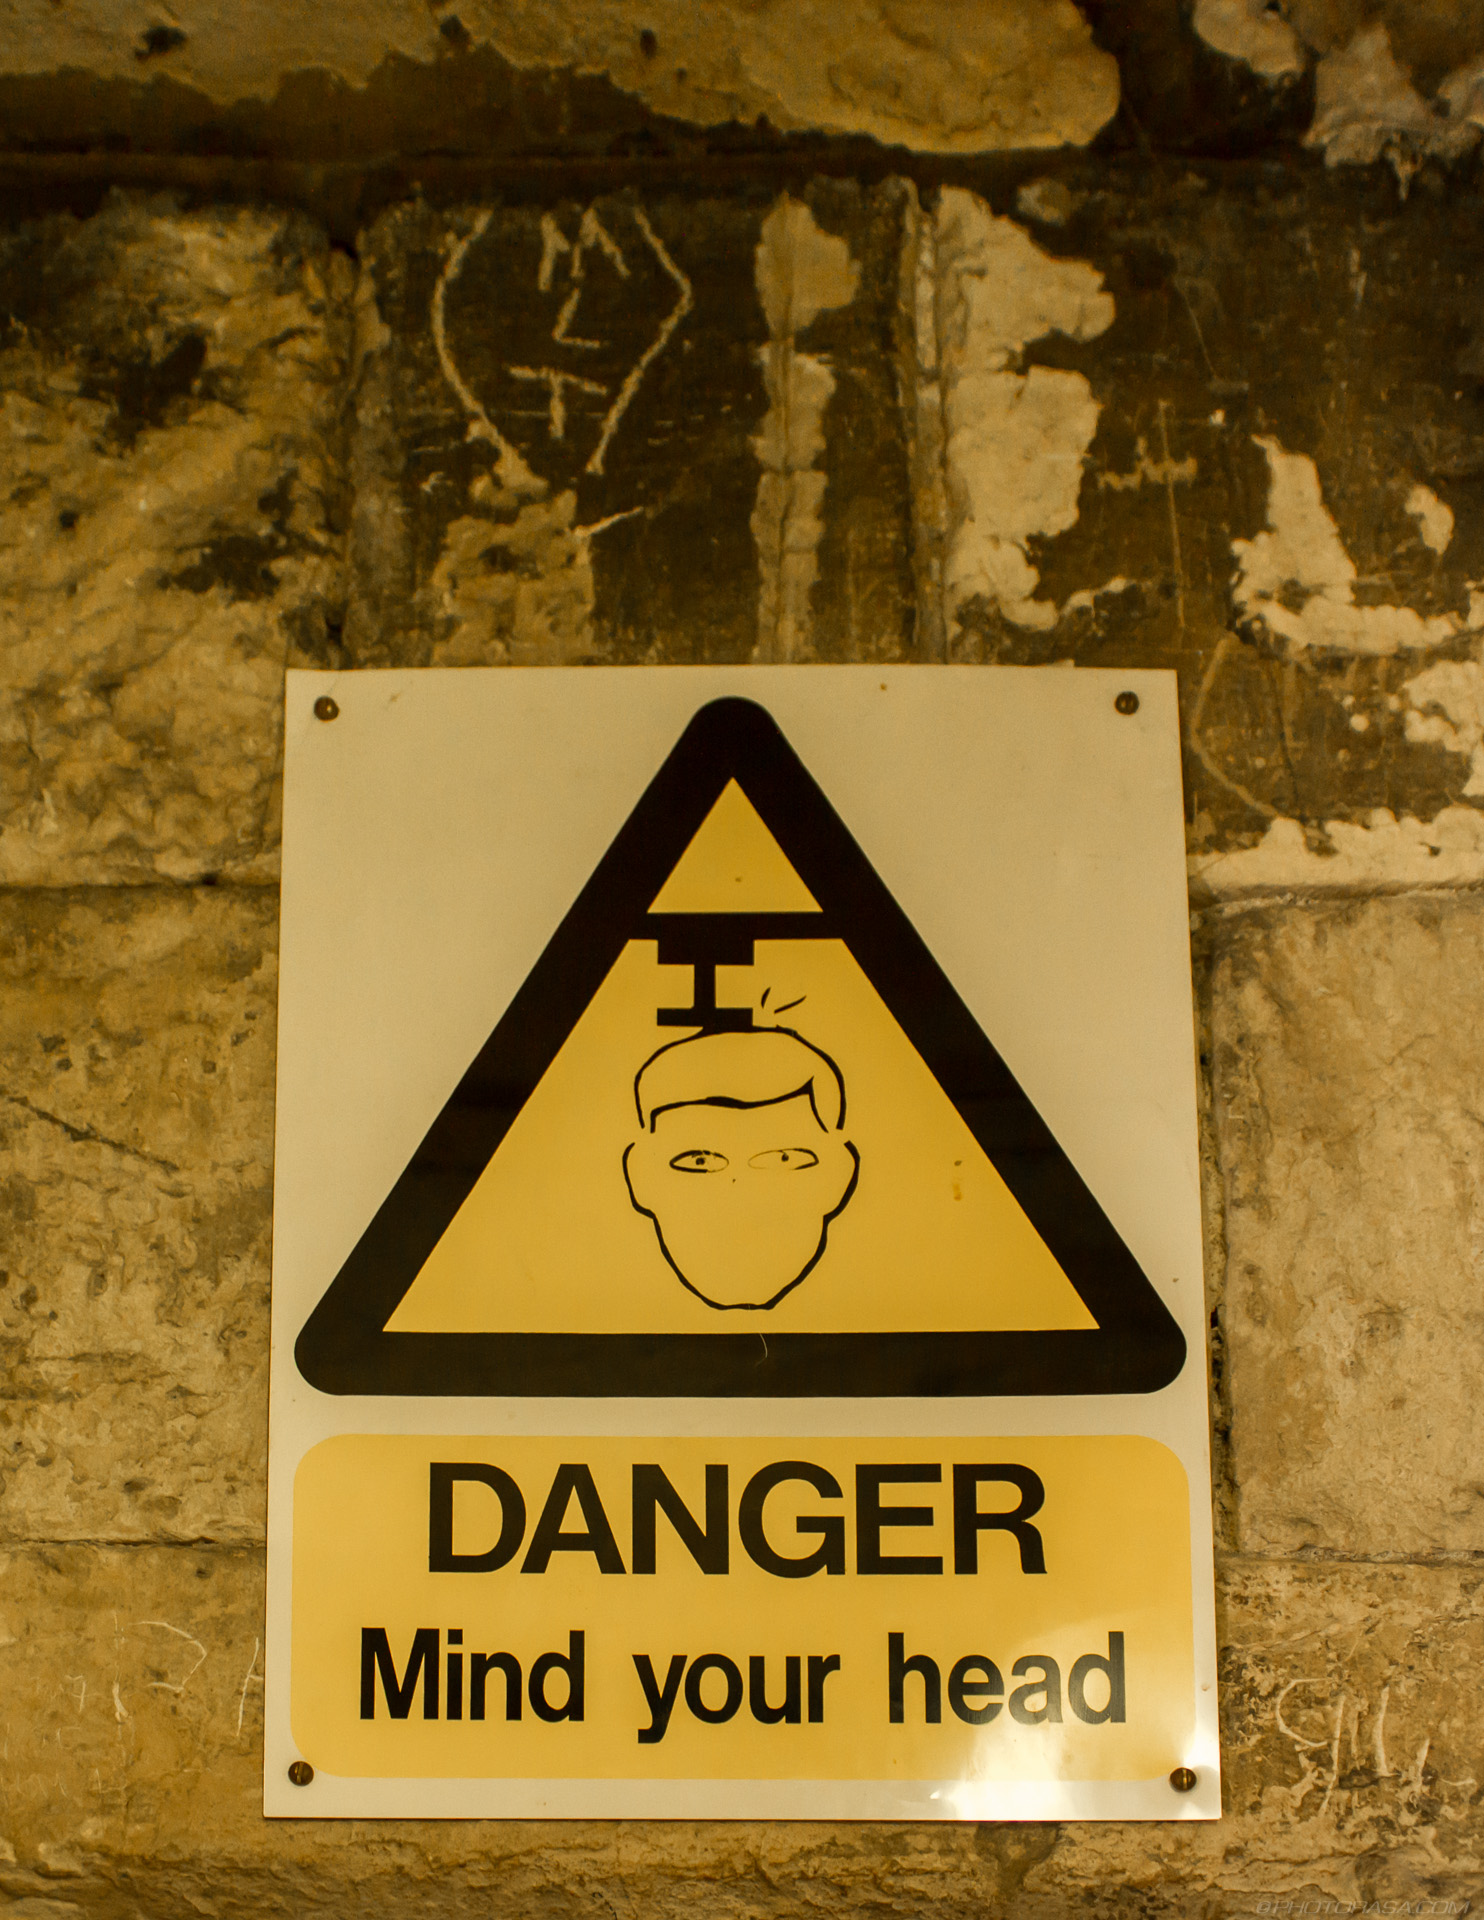 https://photorasa.com/yorkminster-cathedral/danger-mind-your-head-warning-sign/